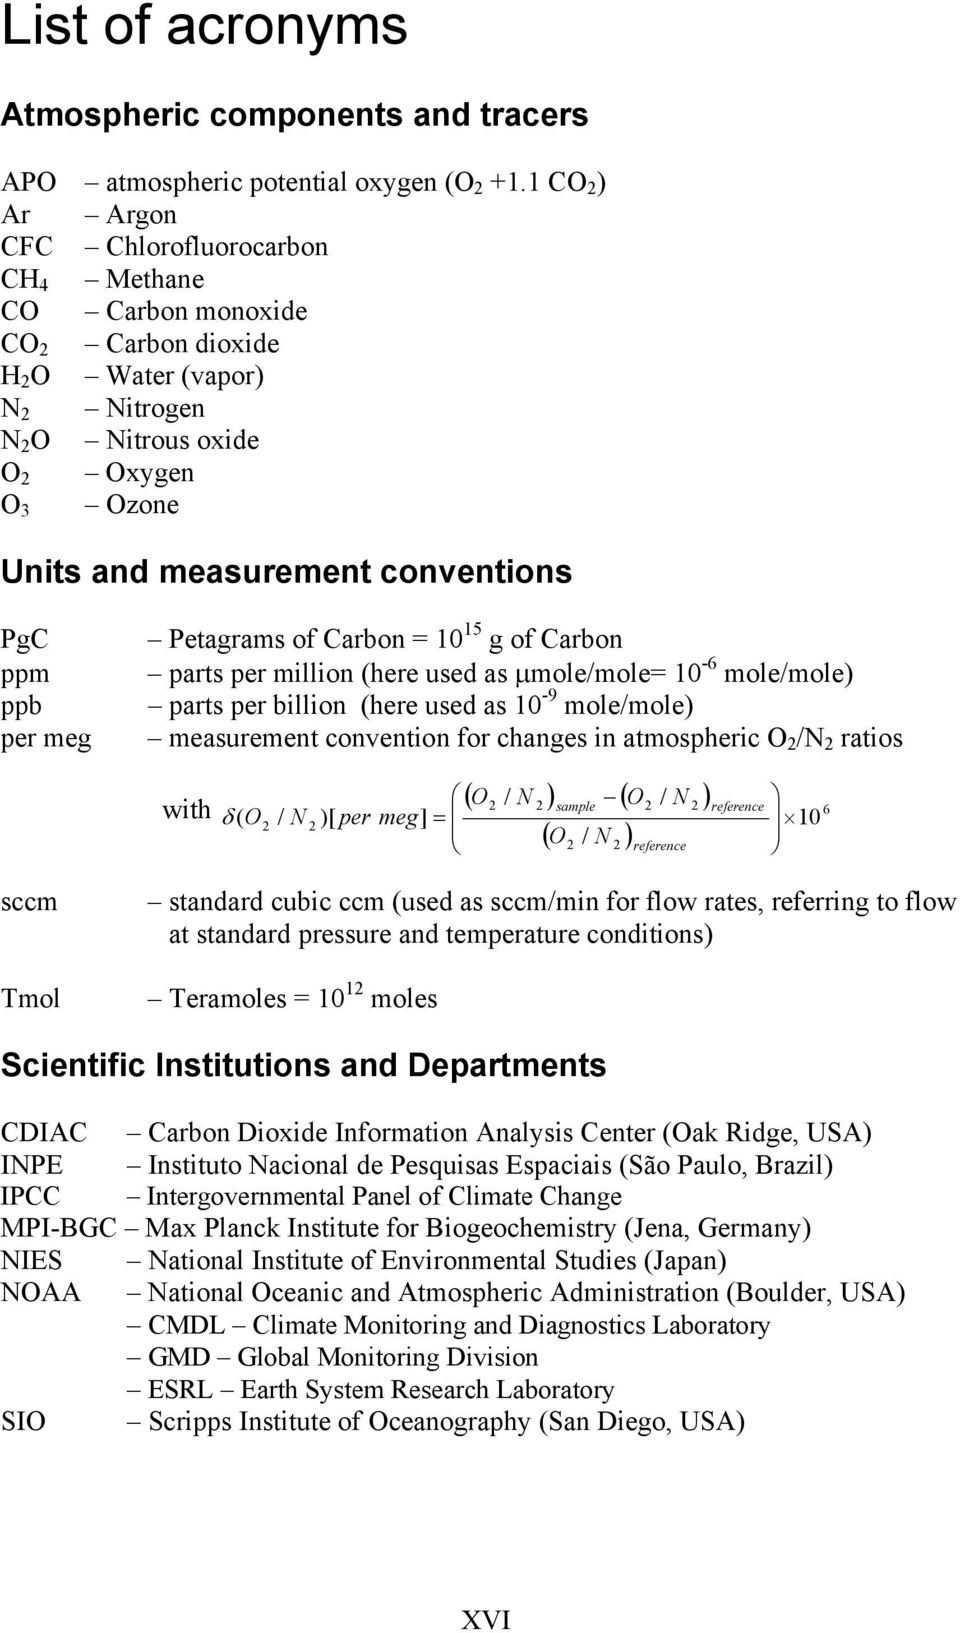 conventions PgC ppm ppb per meg sccm Tmol Petagrams of Carbon = 10 15 g of Carbon parts per million (here used as μmole/mole= 10-6 mole/mole) parts per billion (here used as 10-9 mole/mole)